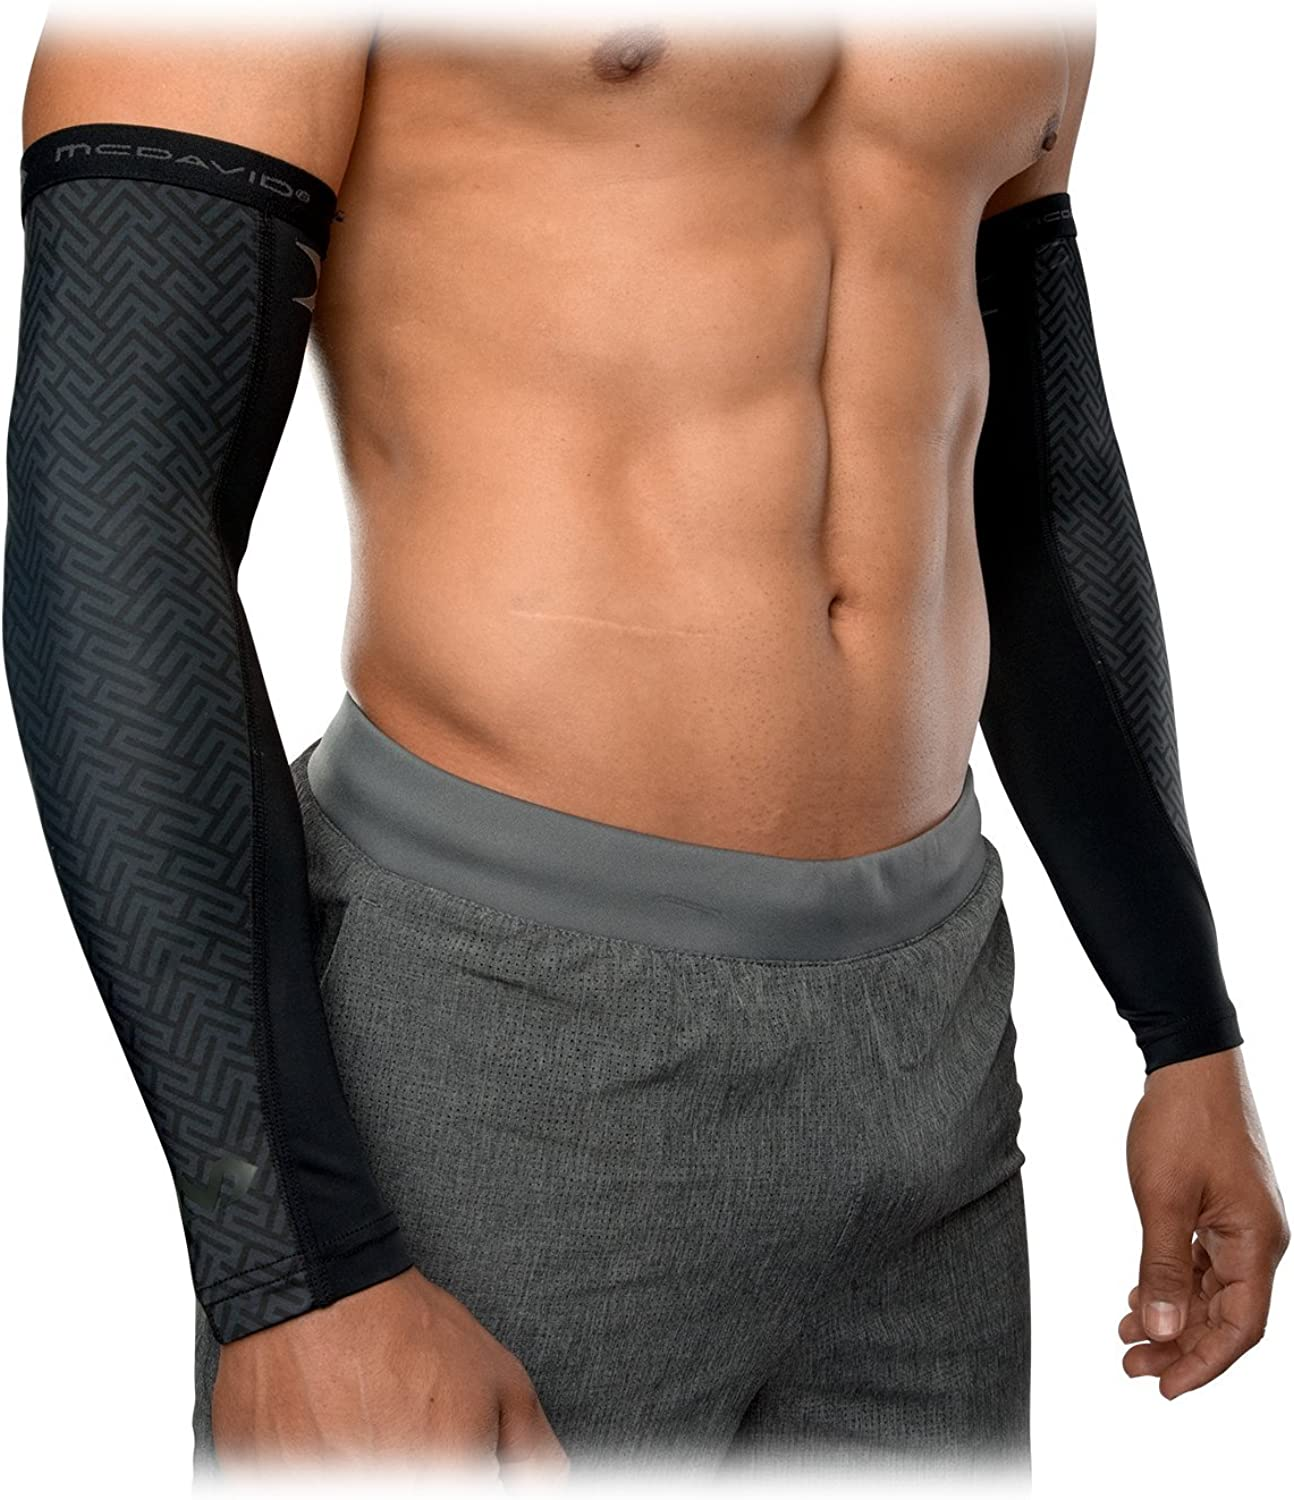 Mcdavid Compression Super beauty product restock Max 63% OFF quality top Arm Sleeves for Performance Enhanced and Sup